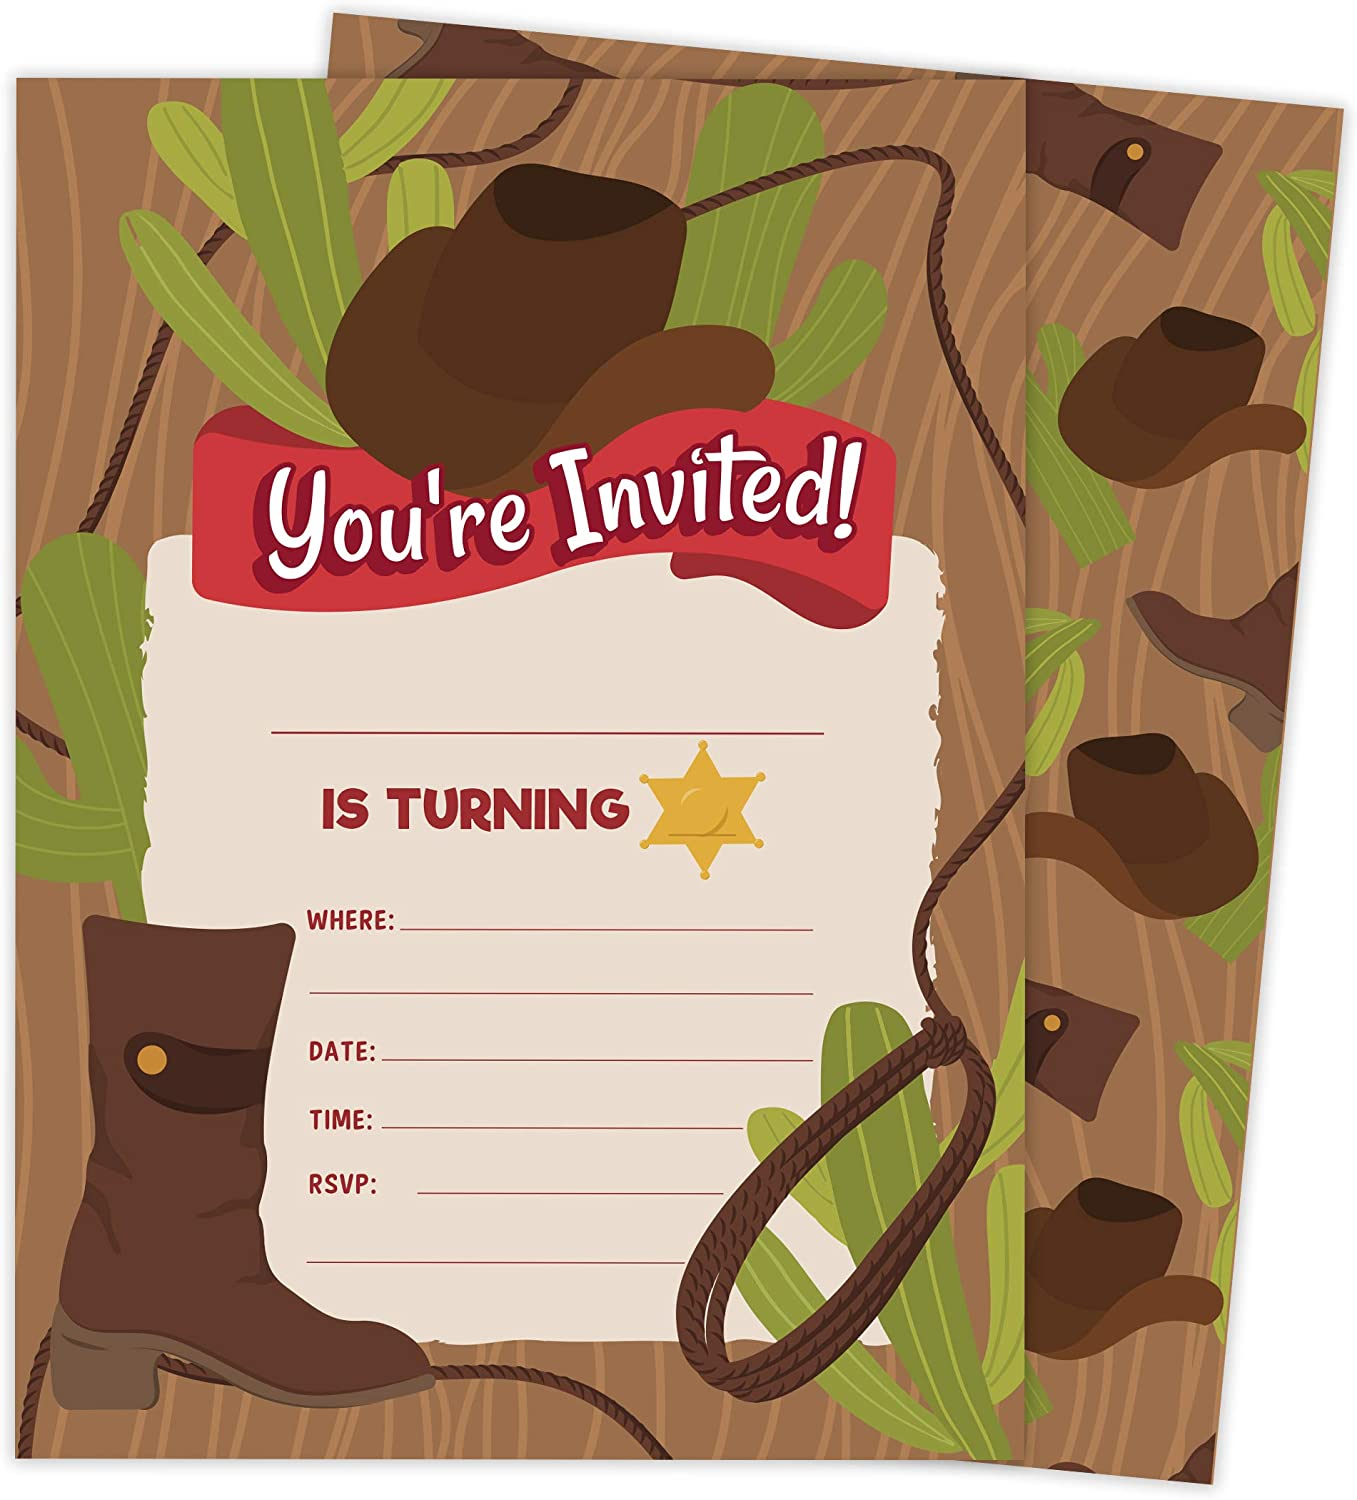 Cowboy 1 Happy Birthday Invitations Invite Cards (25 Count) With Envelopes and Seal Stickers Vinyl Girls Boys Kids Party (25ct)